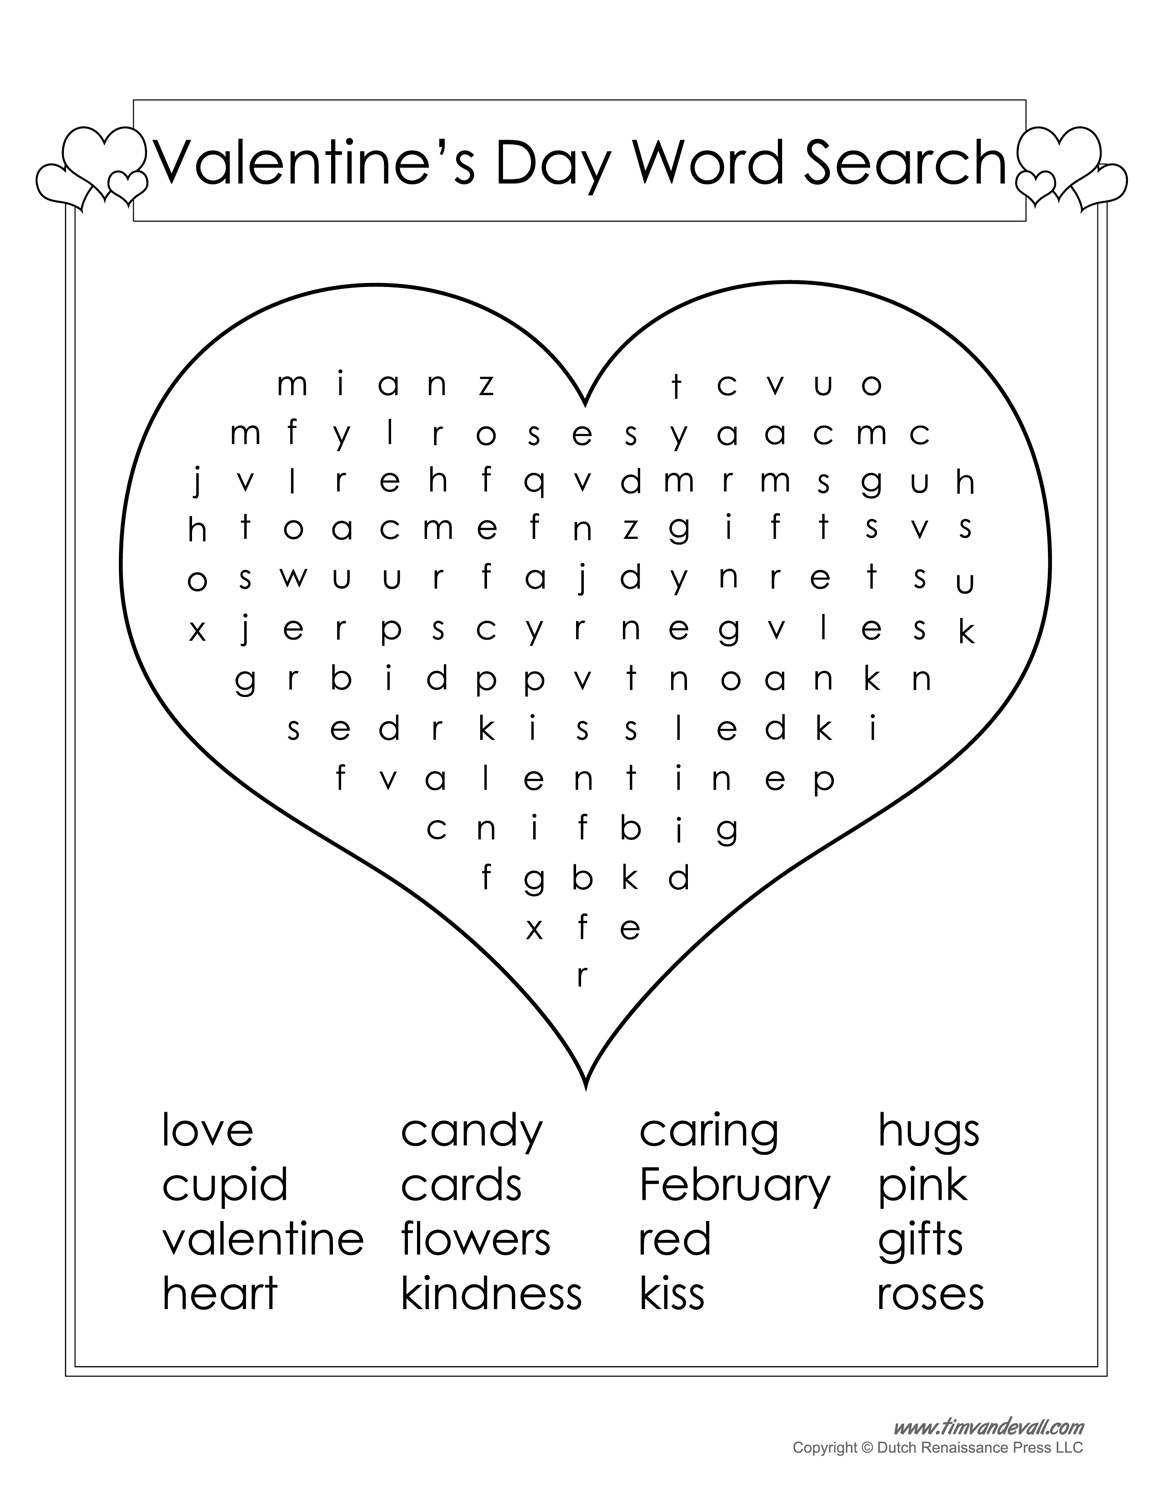 12 Valentines Day Word Search Kitty Baby Love